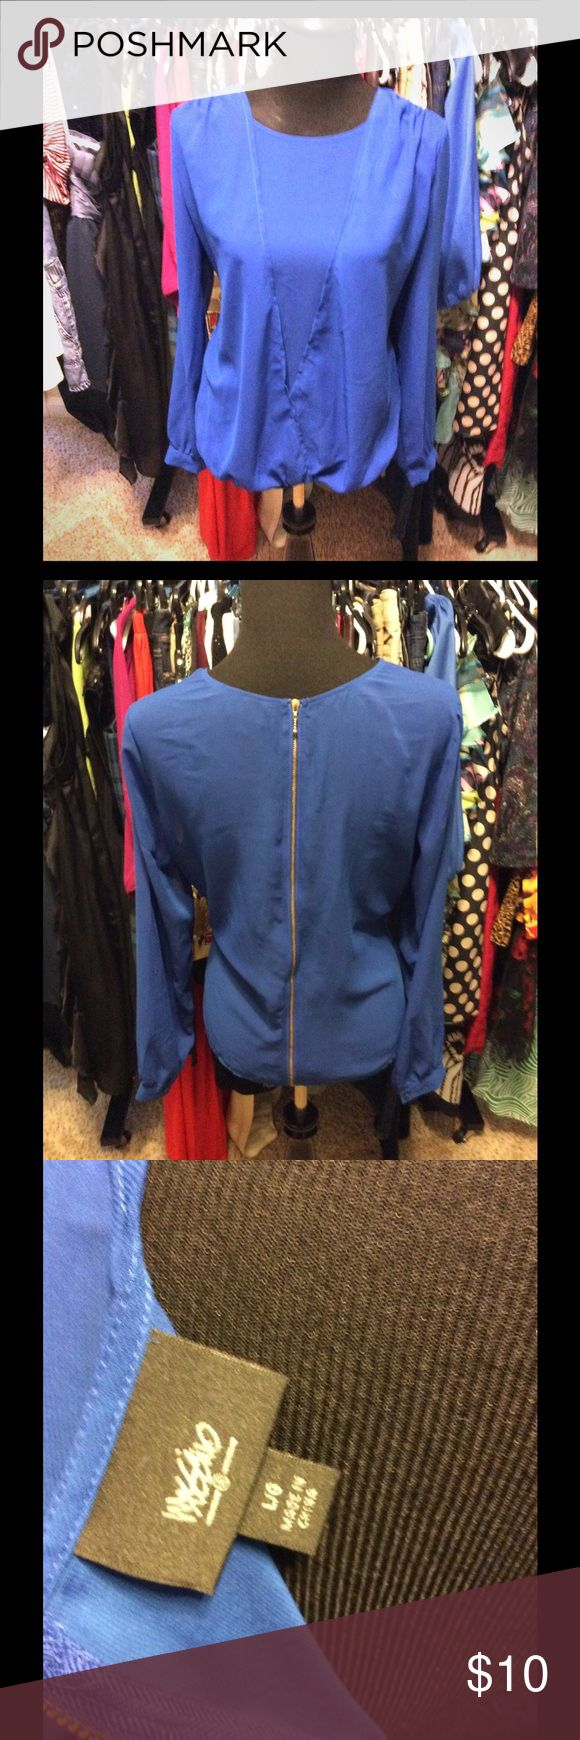 Super Sexy Sheer Top with Zipper in the back Super Sexy Sheer Royal Blue Top with Gold Zipper in the back-Size L Mossimo Supply Co Tops Blouses